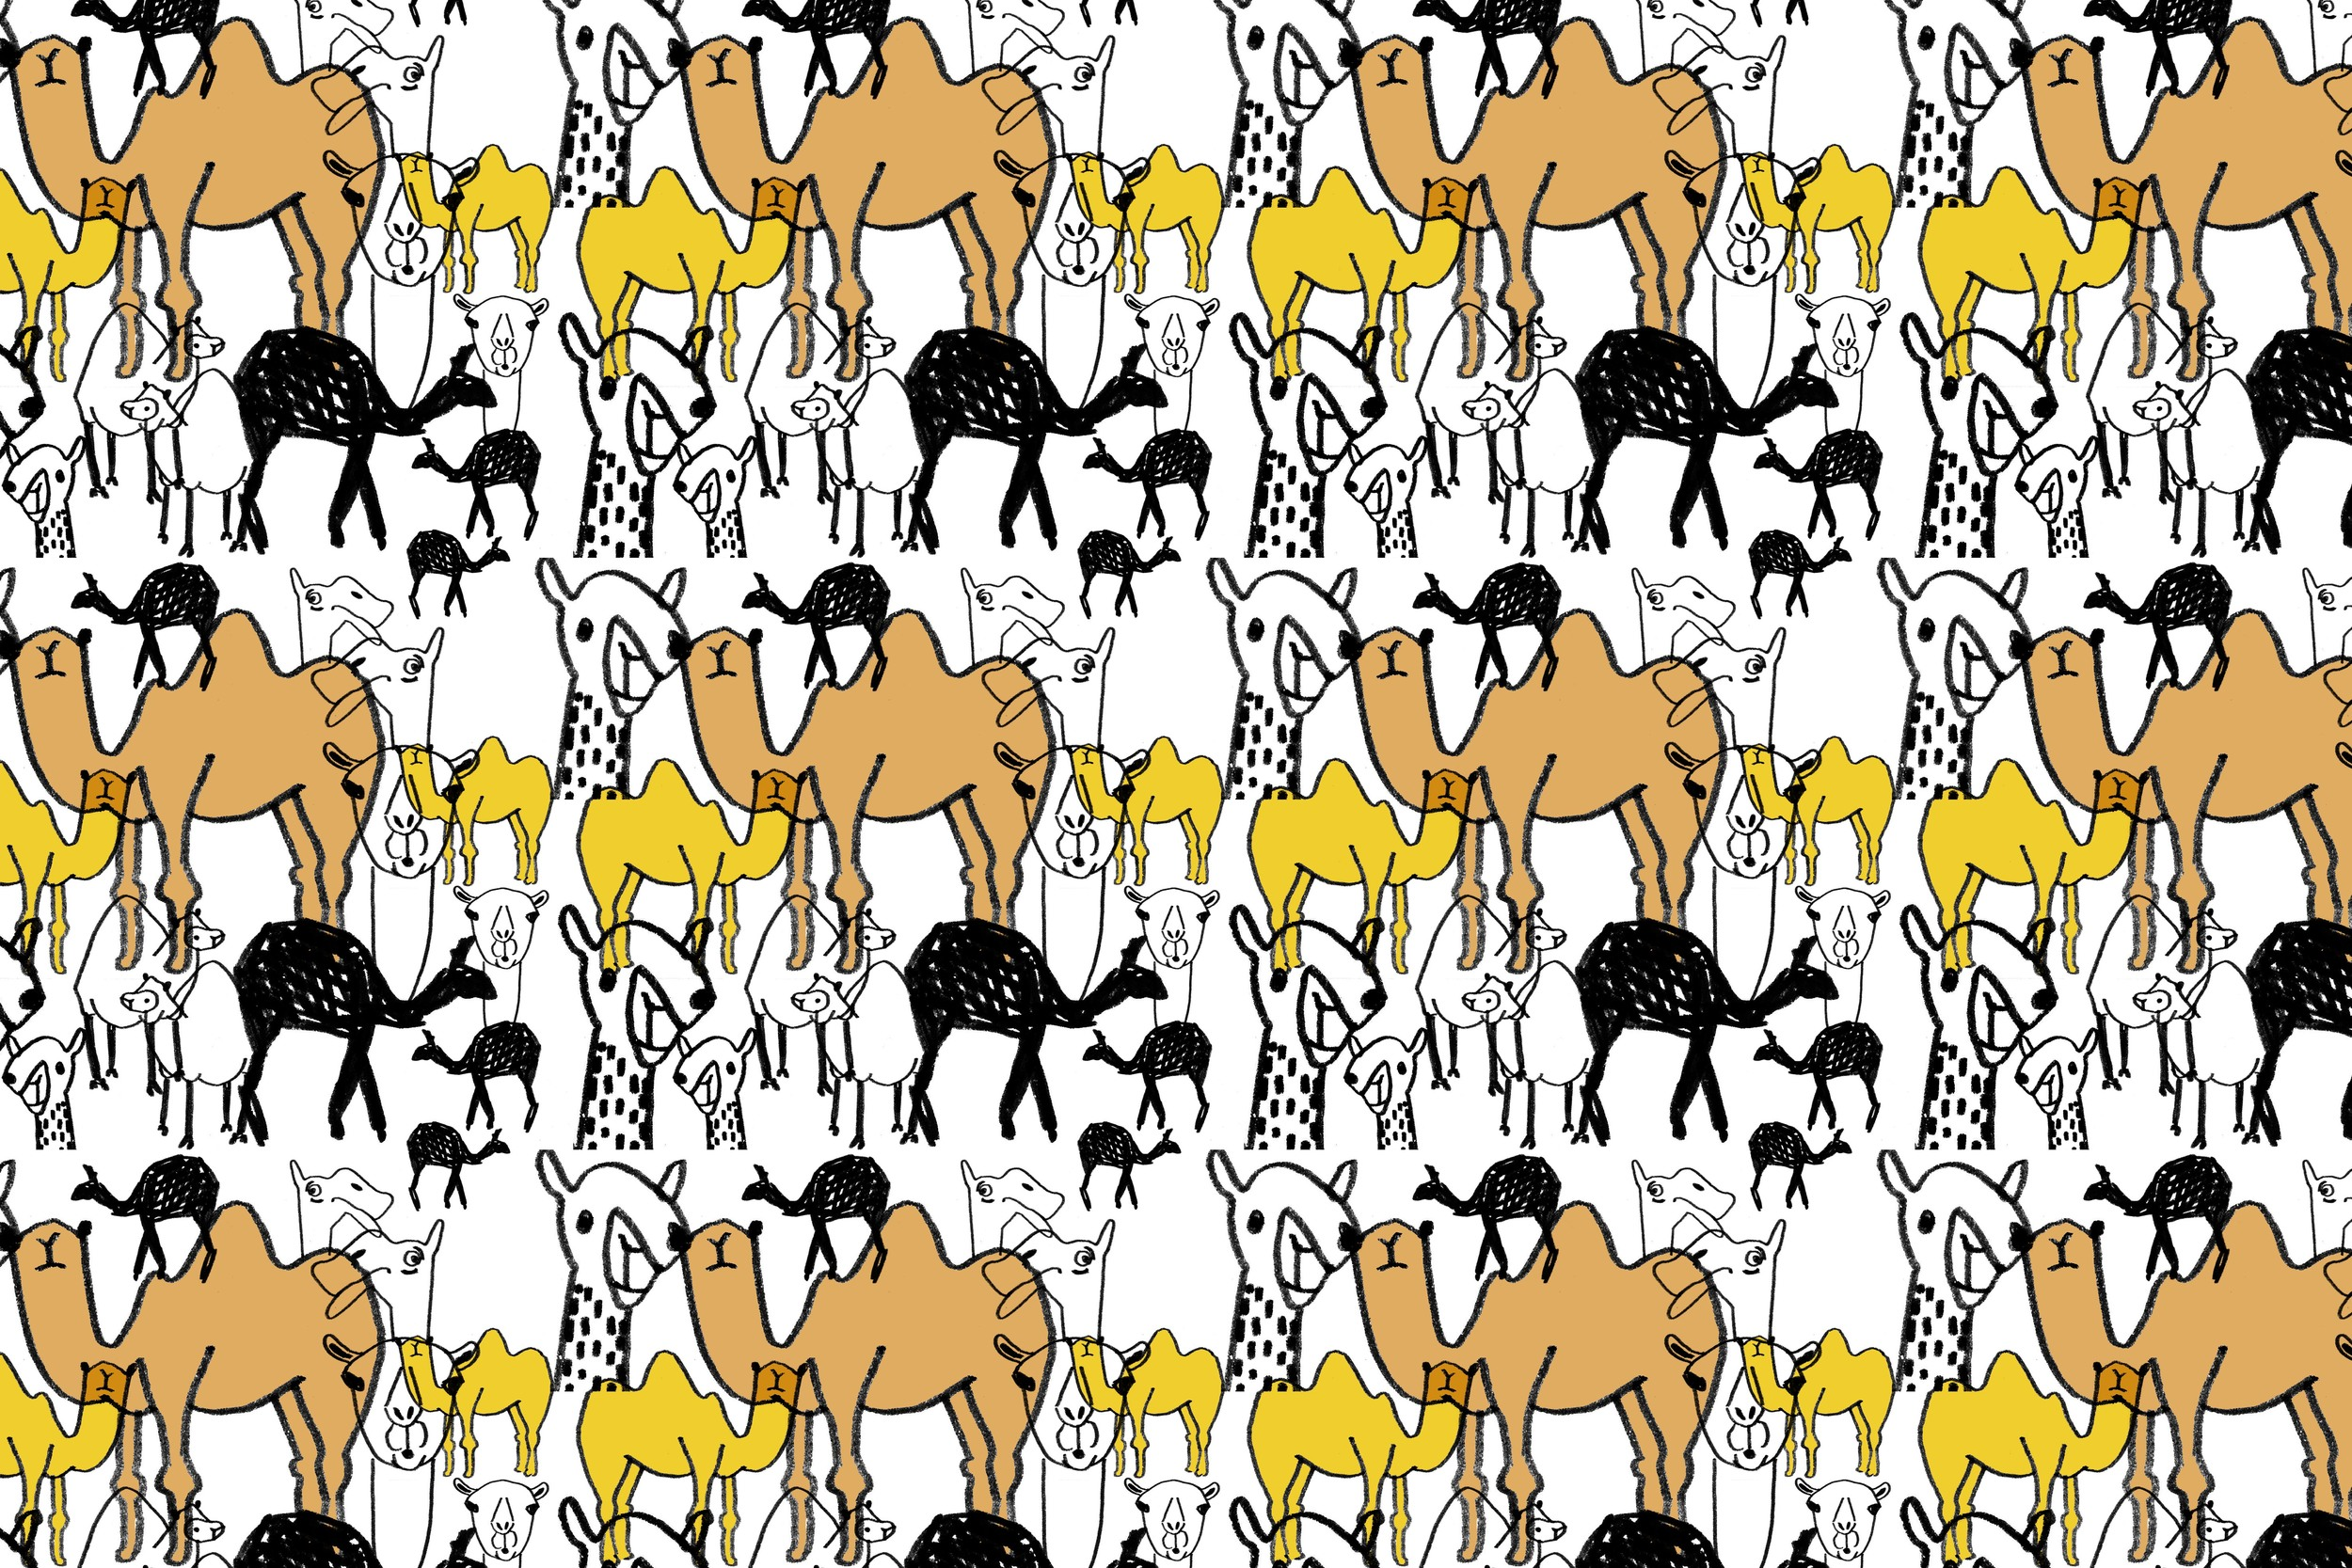 camel pattern| year of creative habits